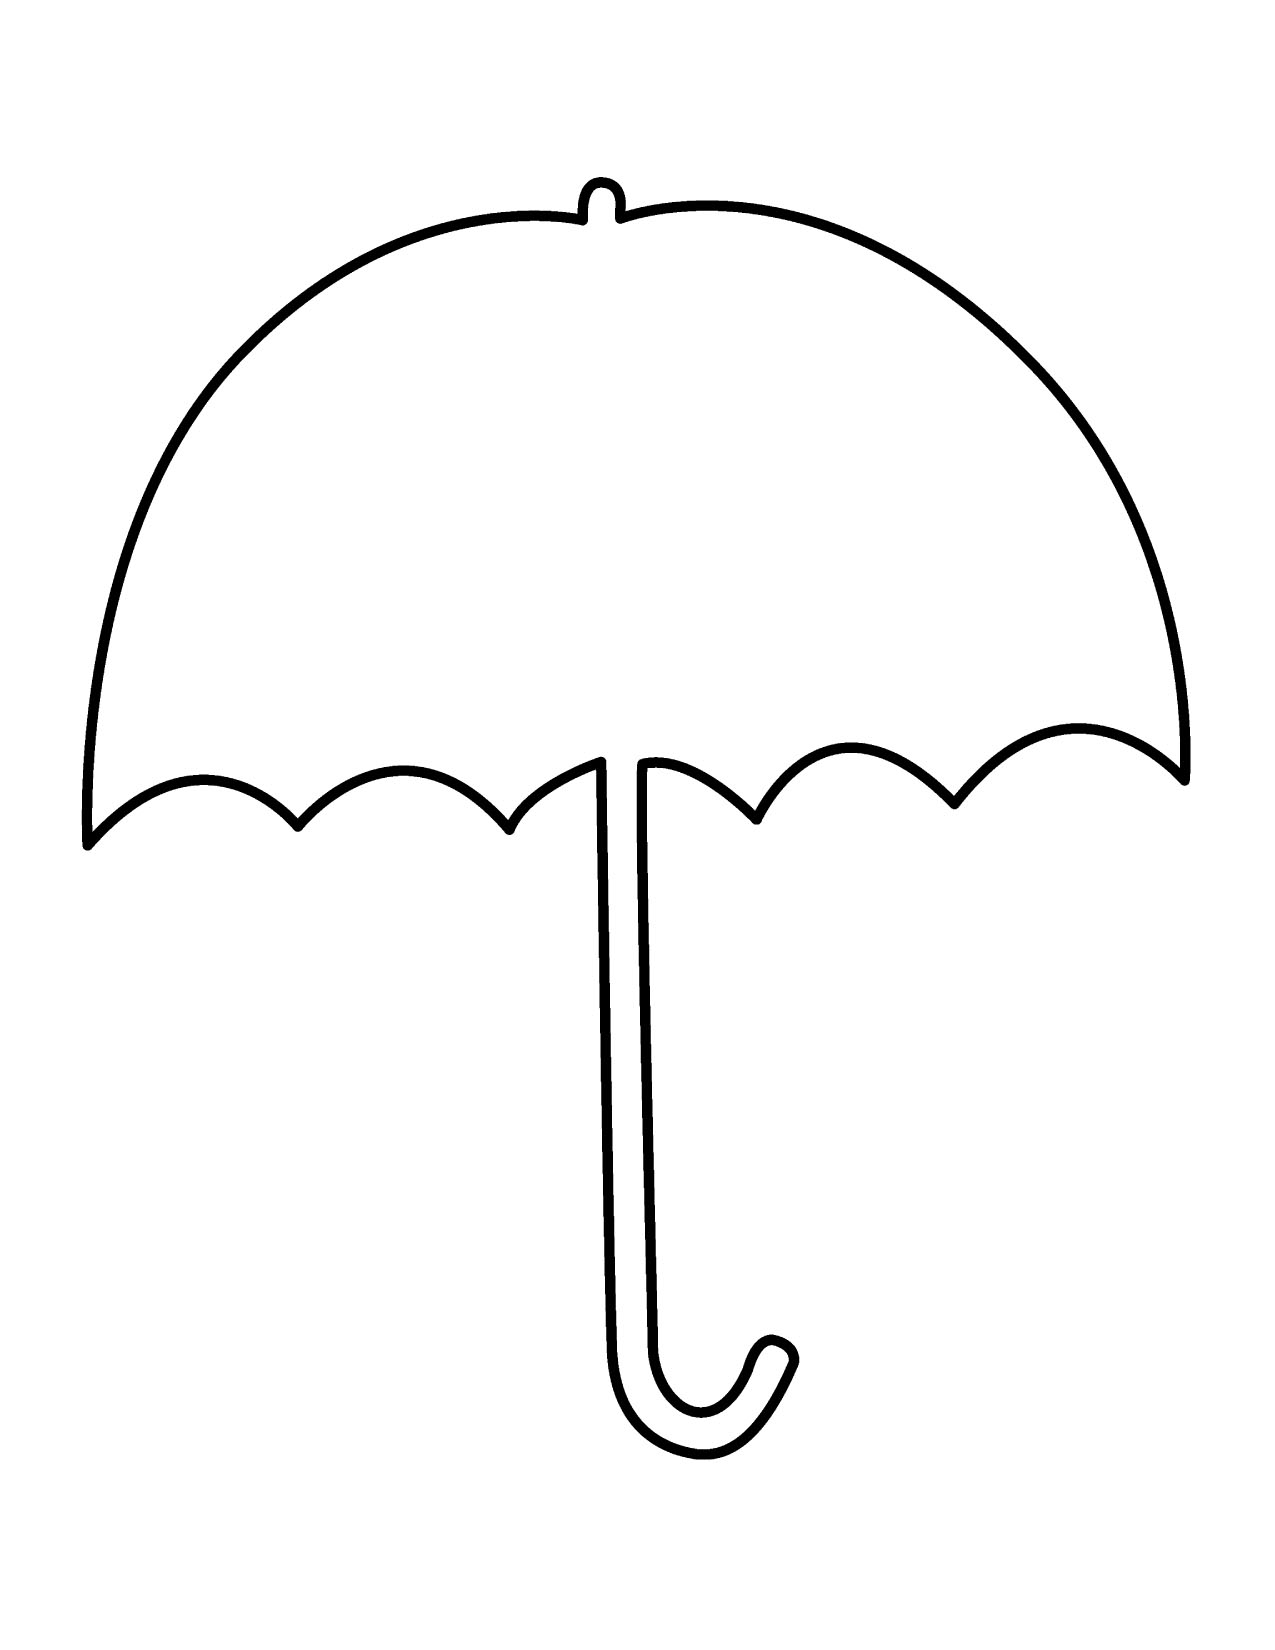 1275x1650 Raindrop Coloring Page Image Clipart Images